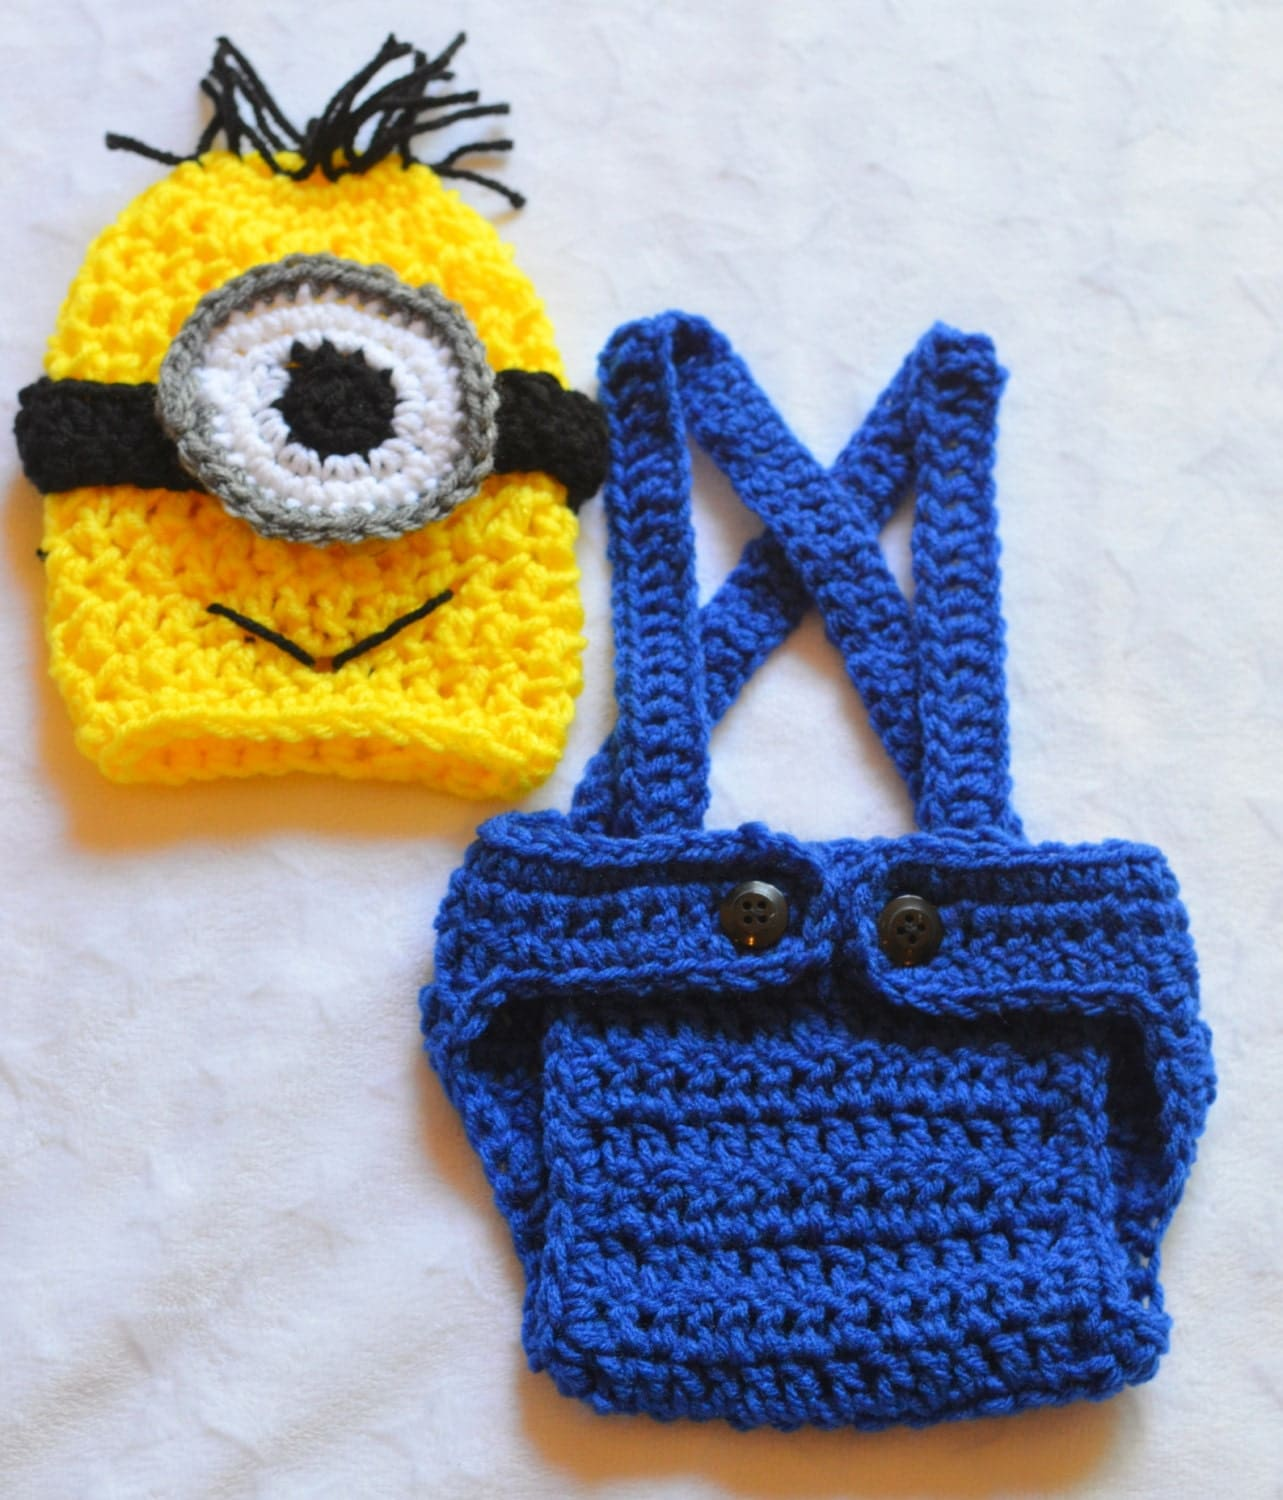 Crochet Patterns For Baby Overalls : Baby Boy Crochet Minion Outfit. Minion Costume. by ...